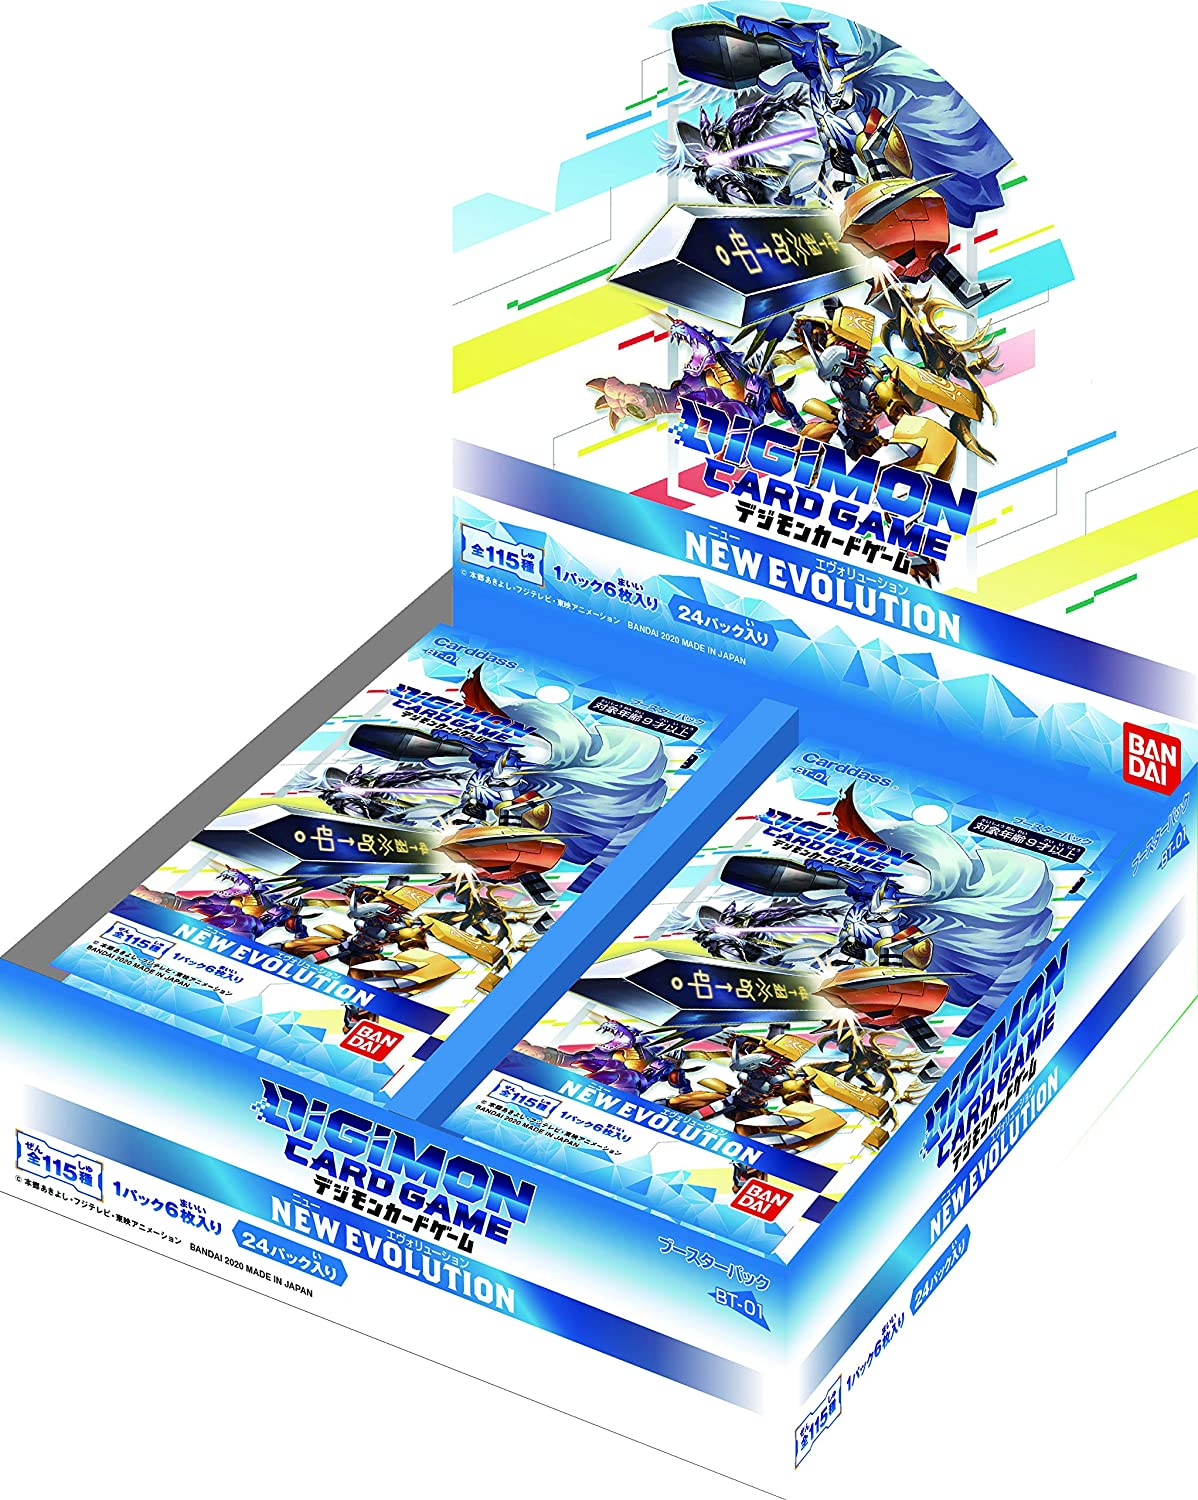 Digimon Card Game Ver 1.0 BT-1 New Evolution Booster Box